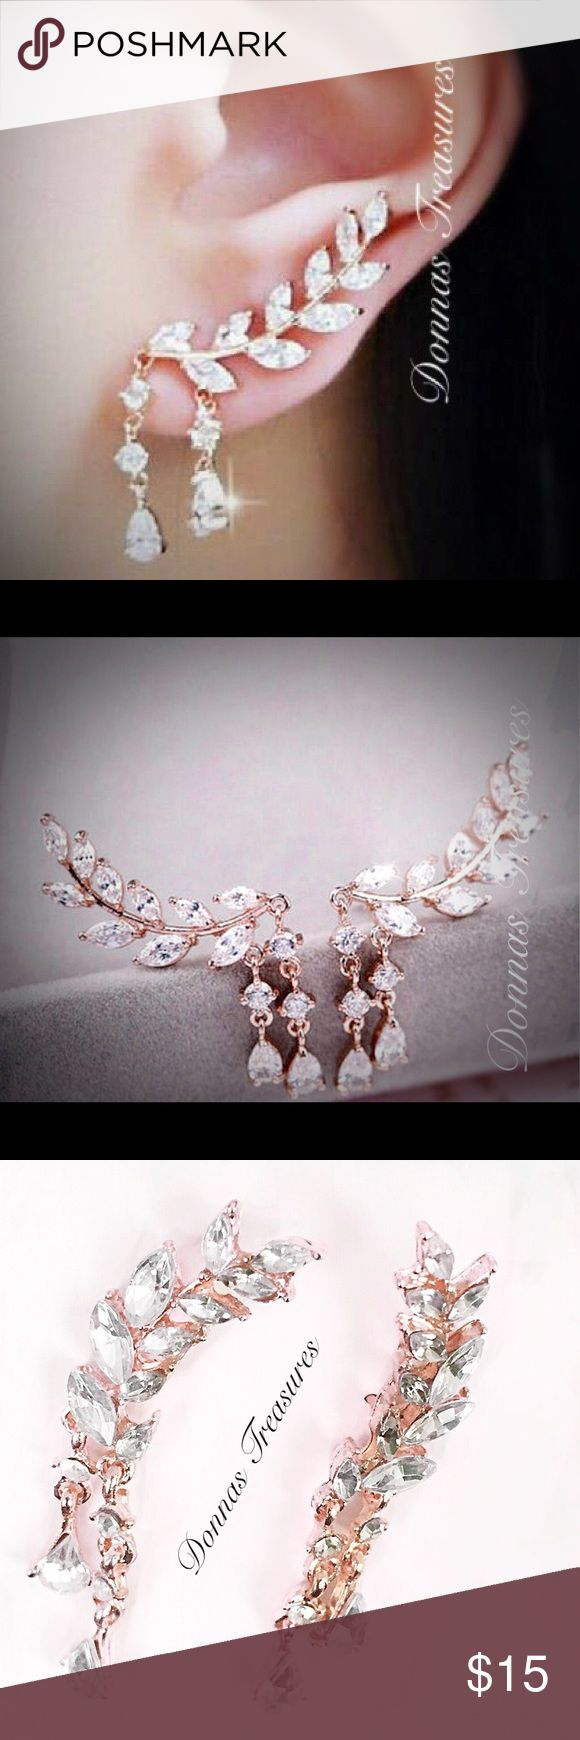 """🎉Rose Gold & Crystal Leaf Earrings These beauties measure 1 1/4"""" long, 1/4"""" wide & have a 1/4"""" dangle. The leaves are crystal & the setting is nickel free Rose Gold alloy.  #0849/1 Jewelry Earrings"""